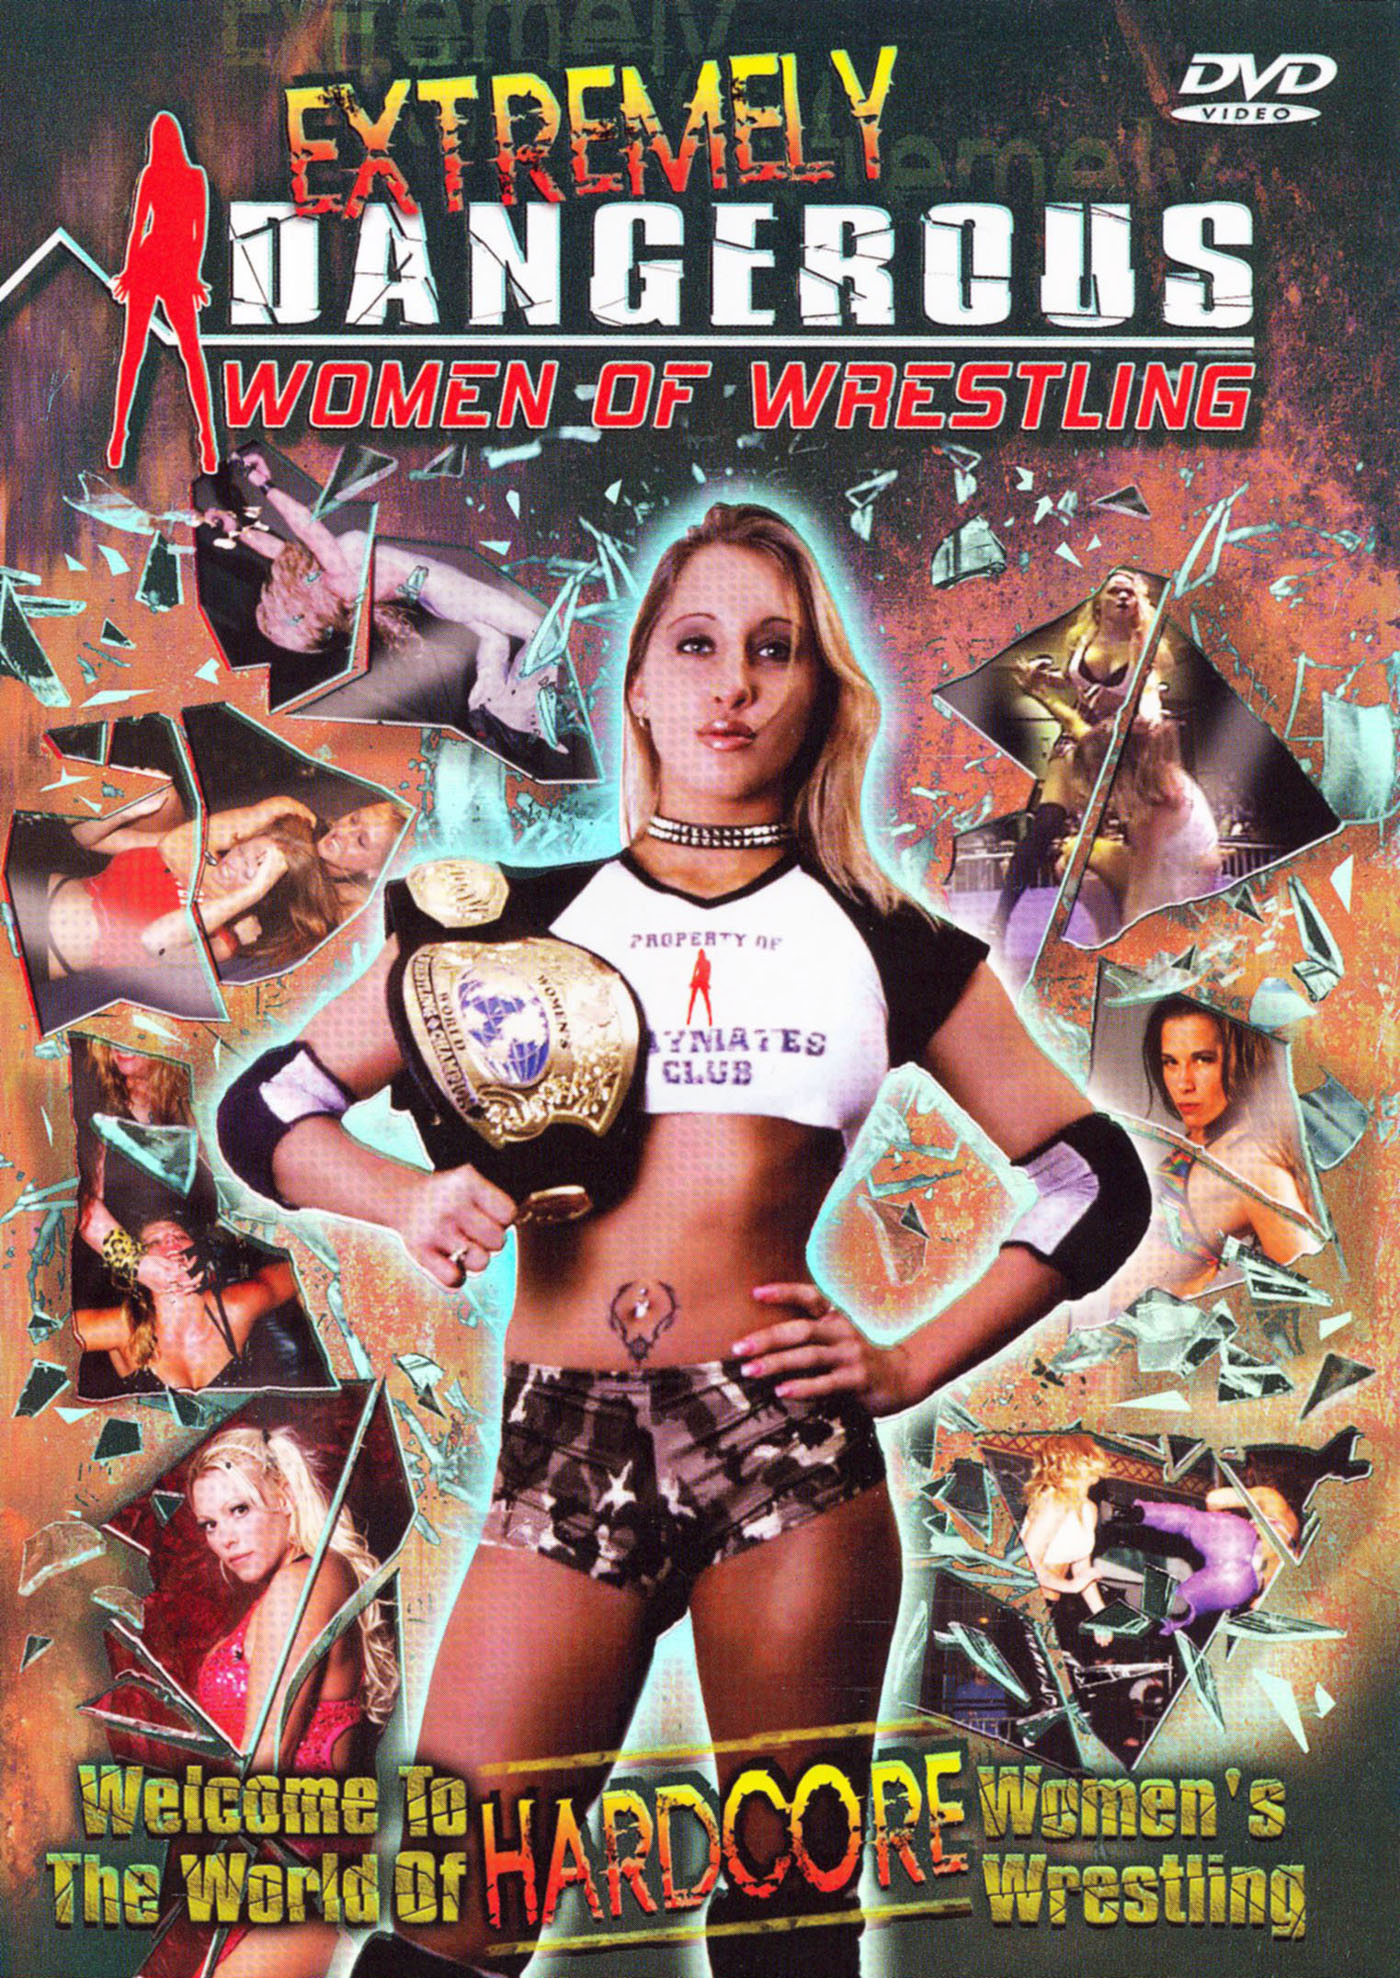 Extremely Dangerous Women of Wrestling, Vol. 1